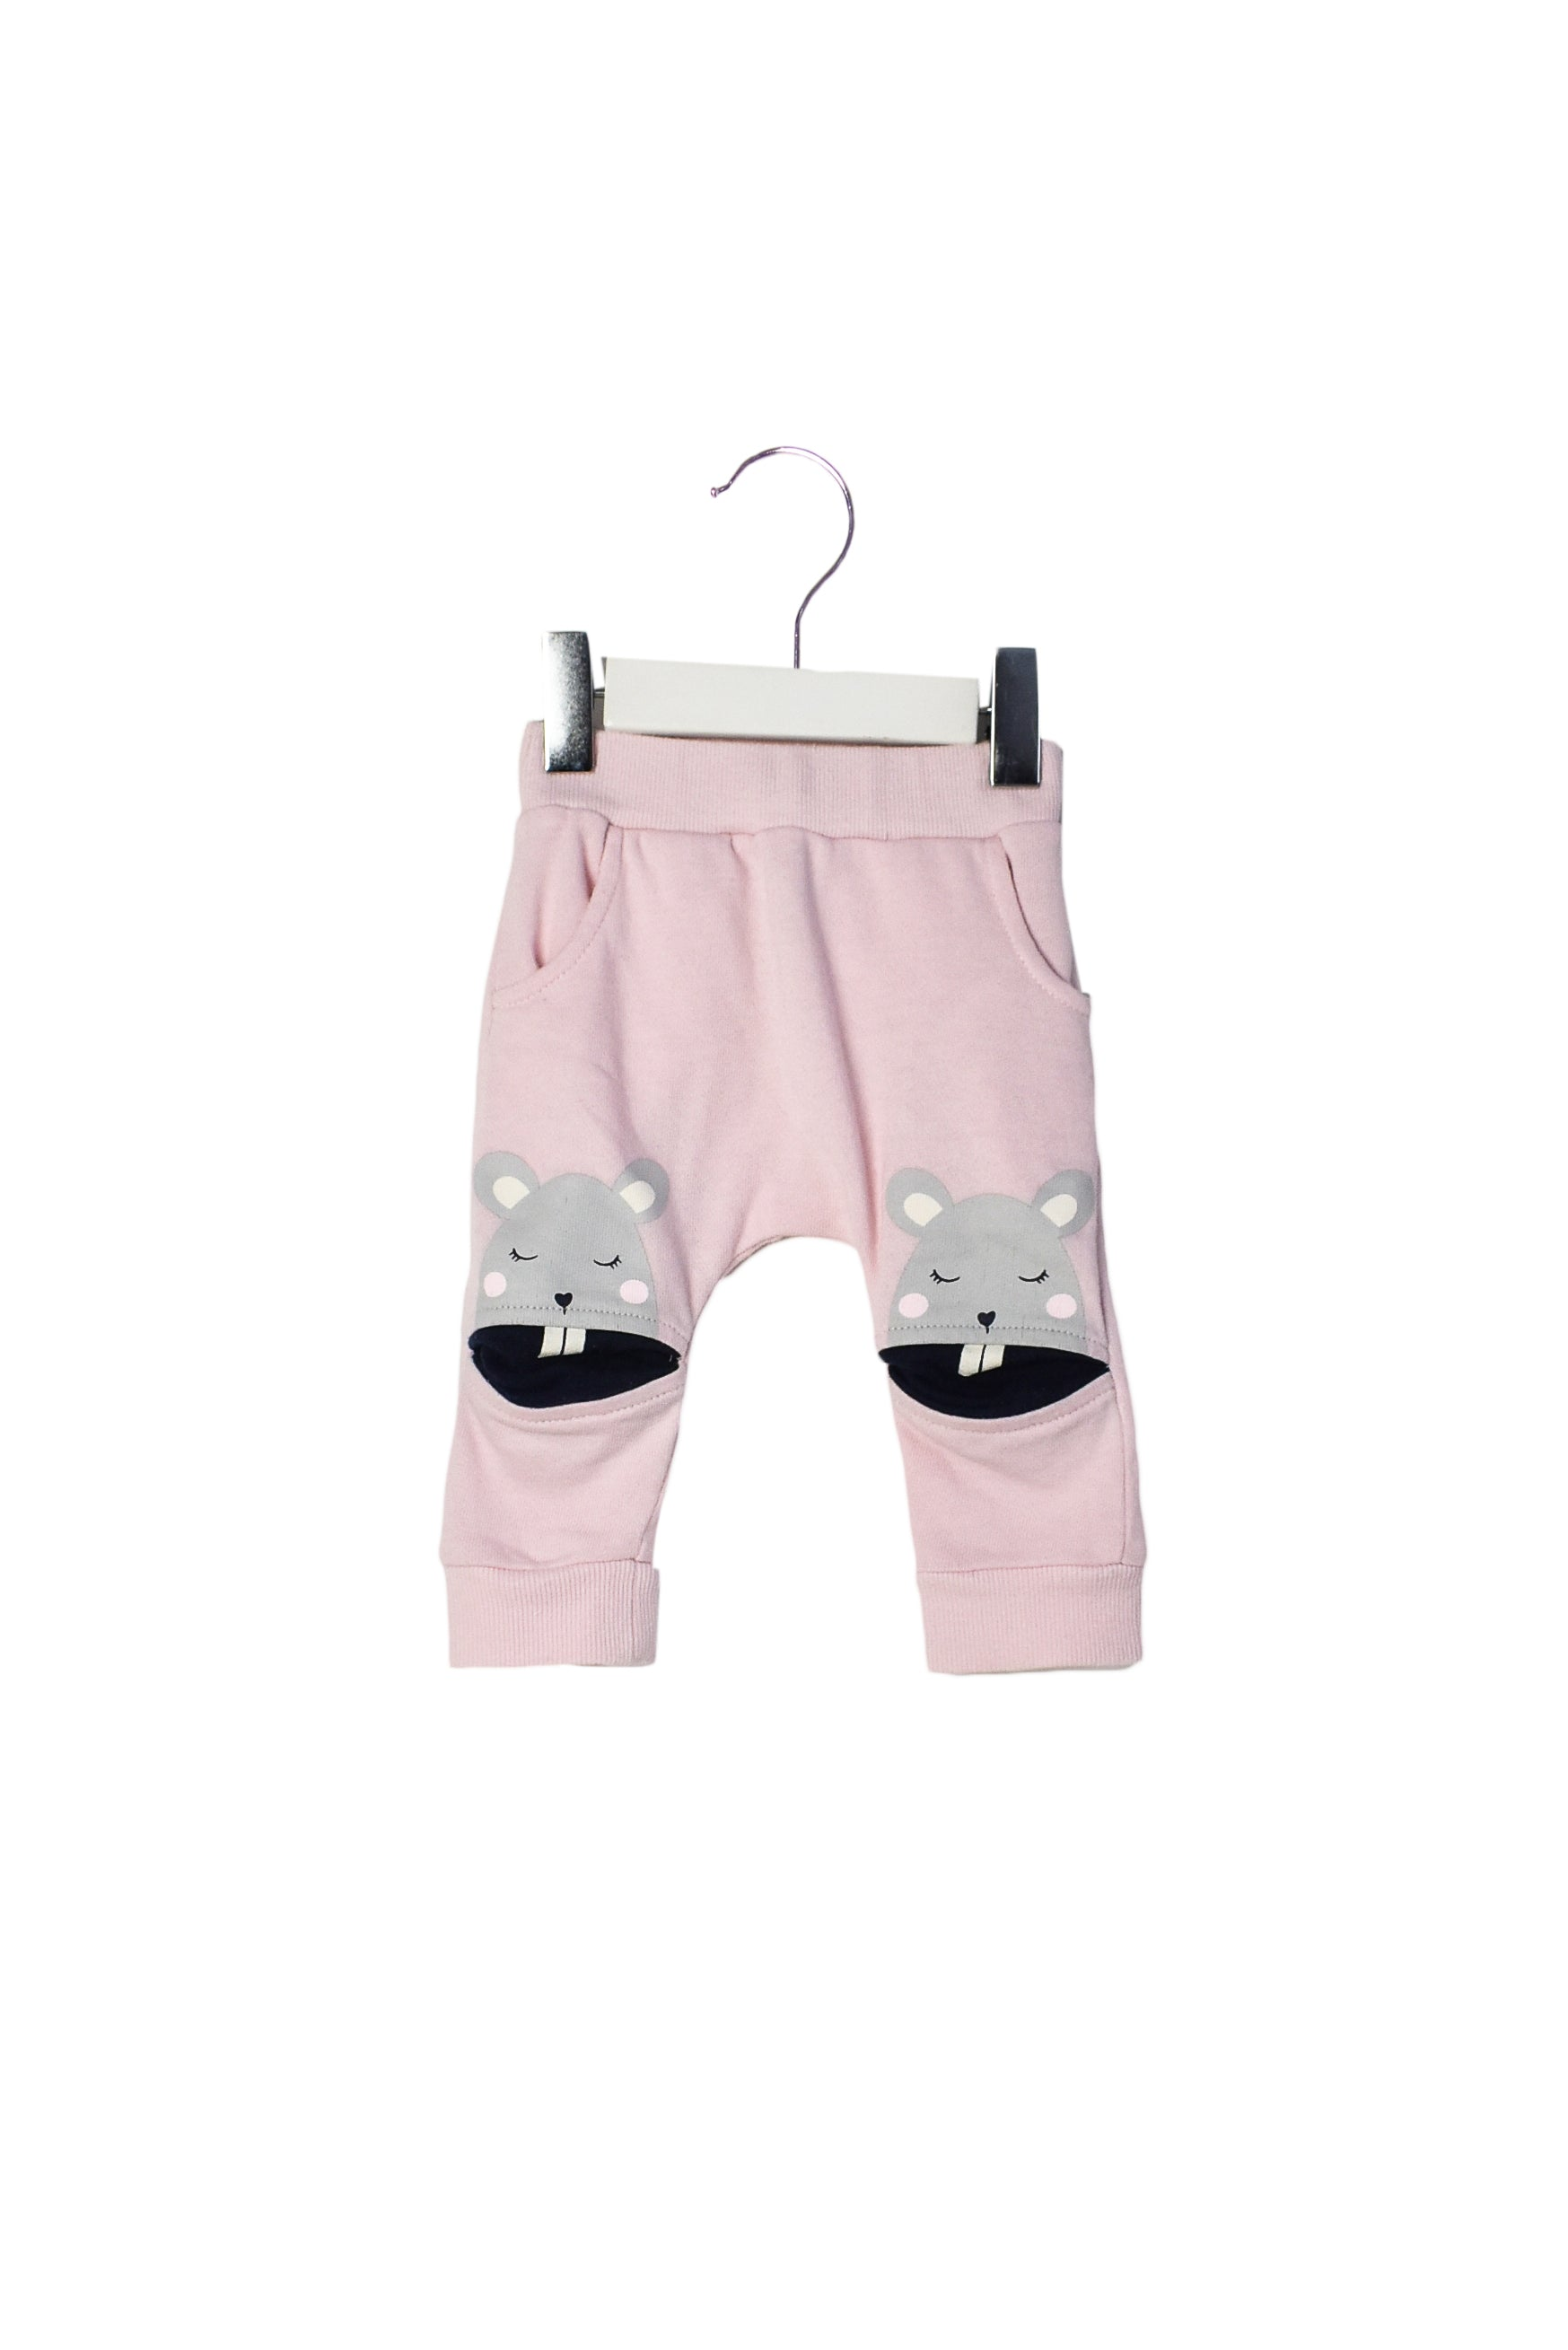 10007521 Seed Baby ~ Pants 0-3M at Retykle